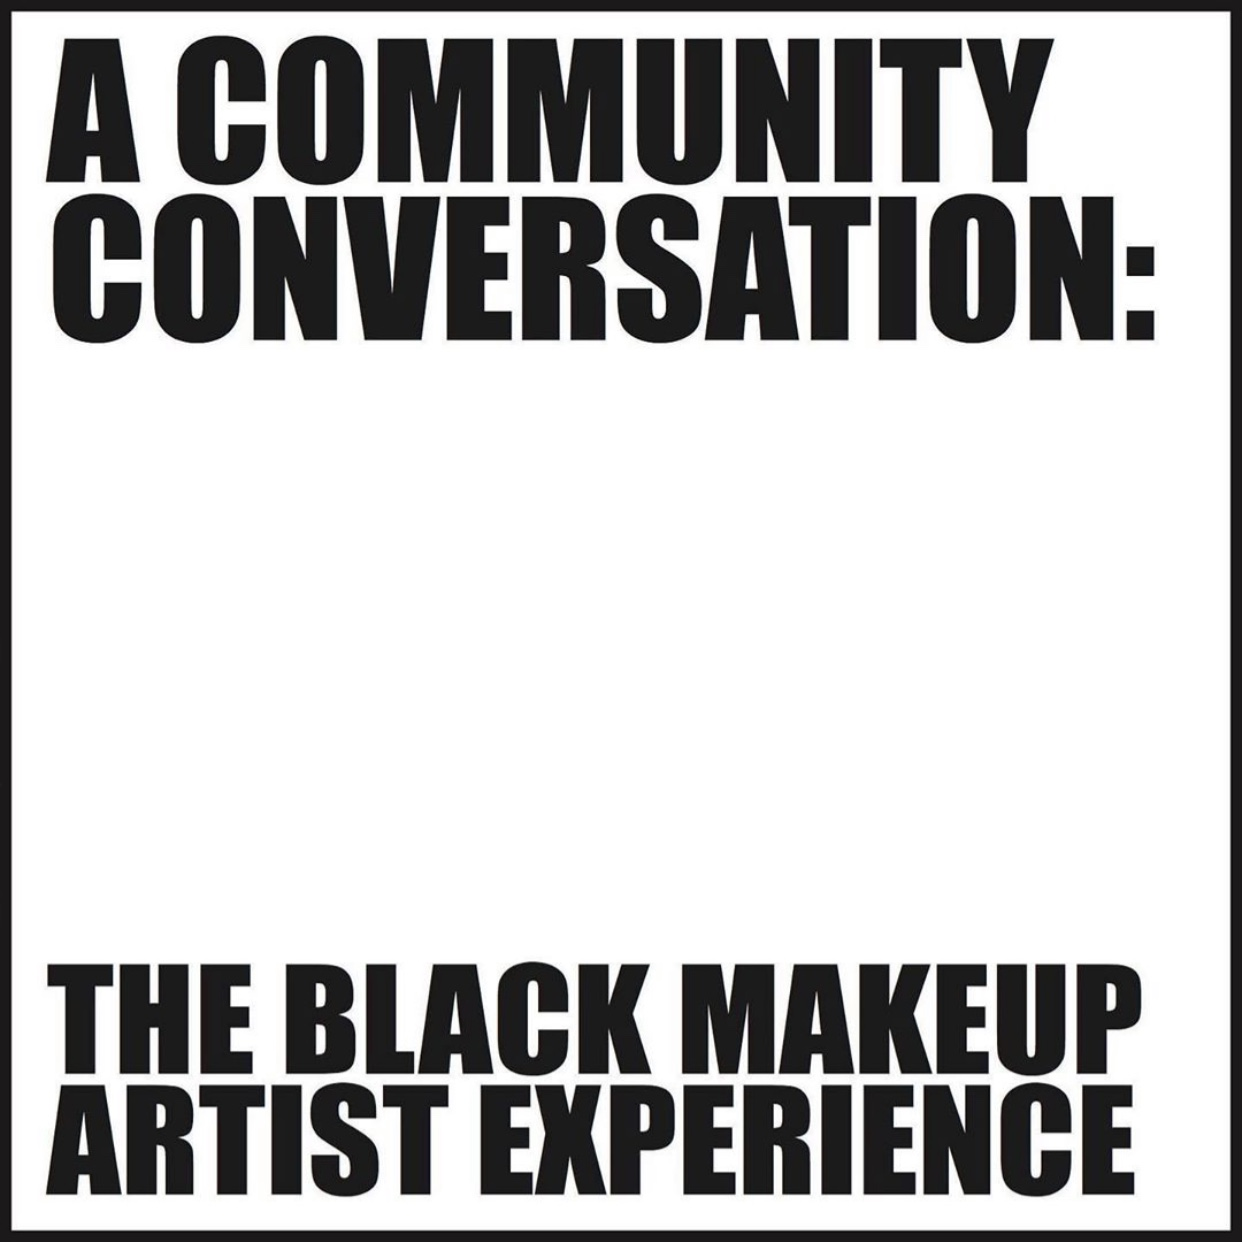 Community Conversation: The Black Makeup Artist Experience